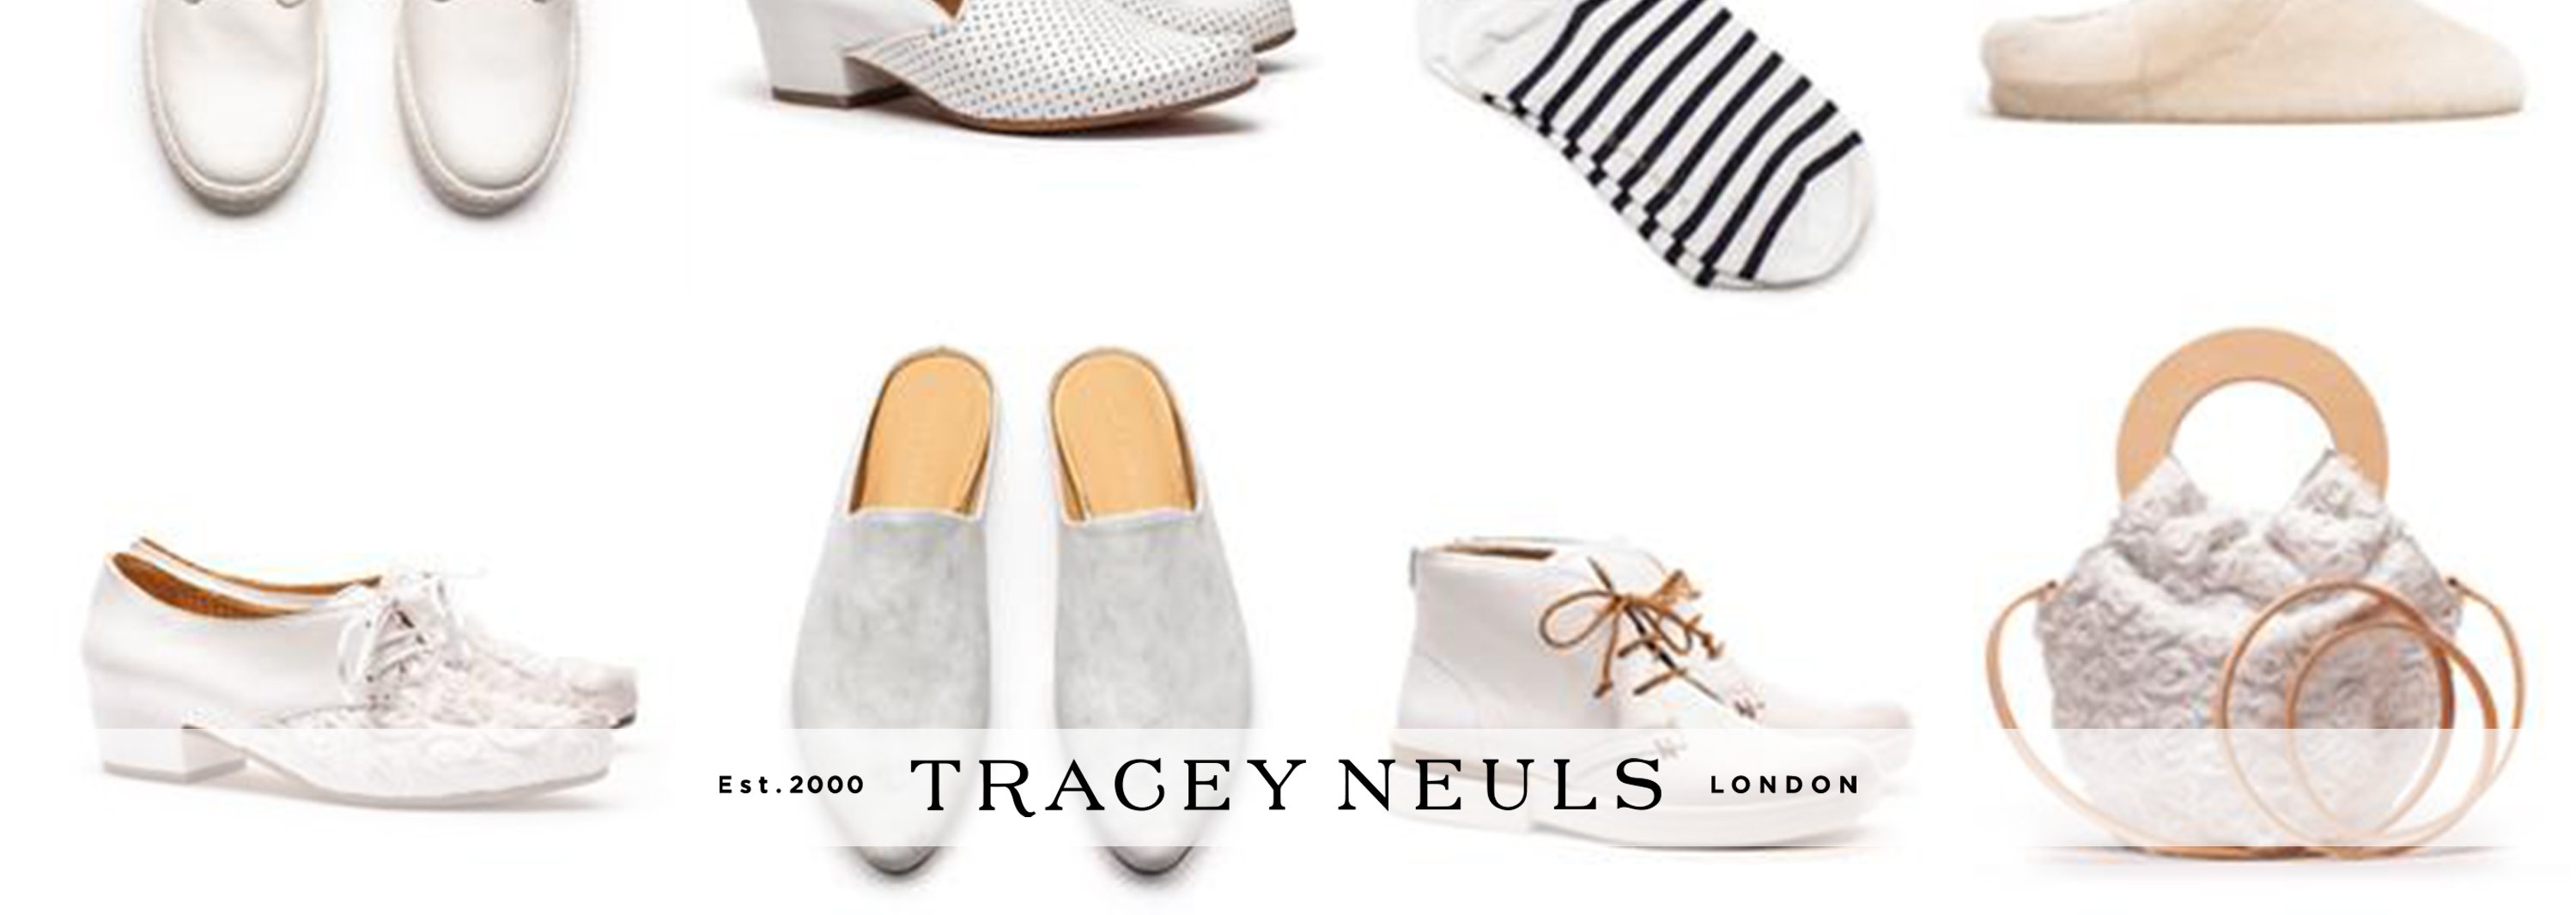 Tracey Neuls